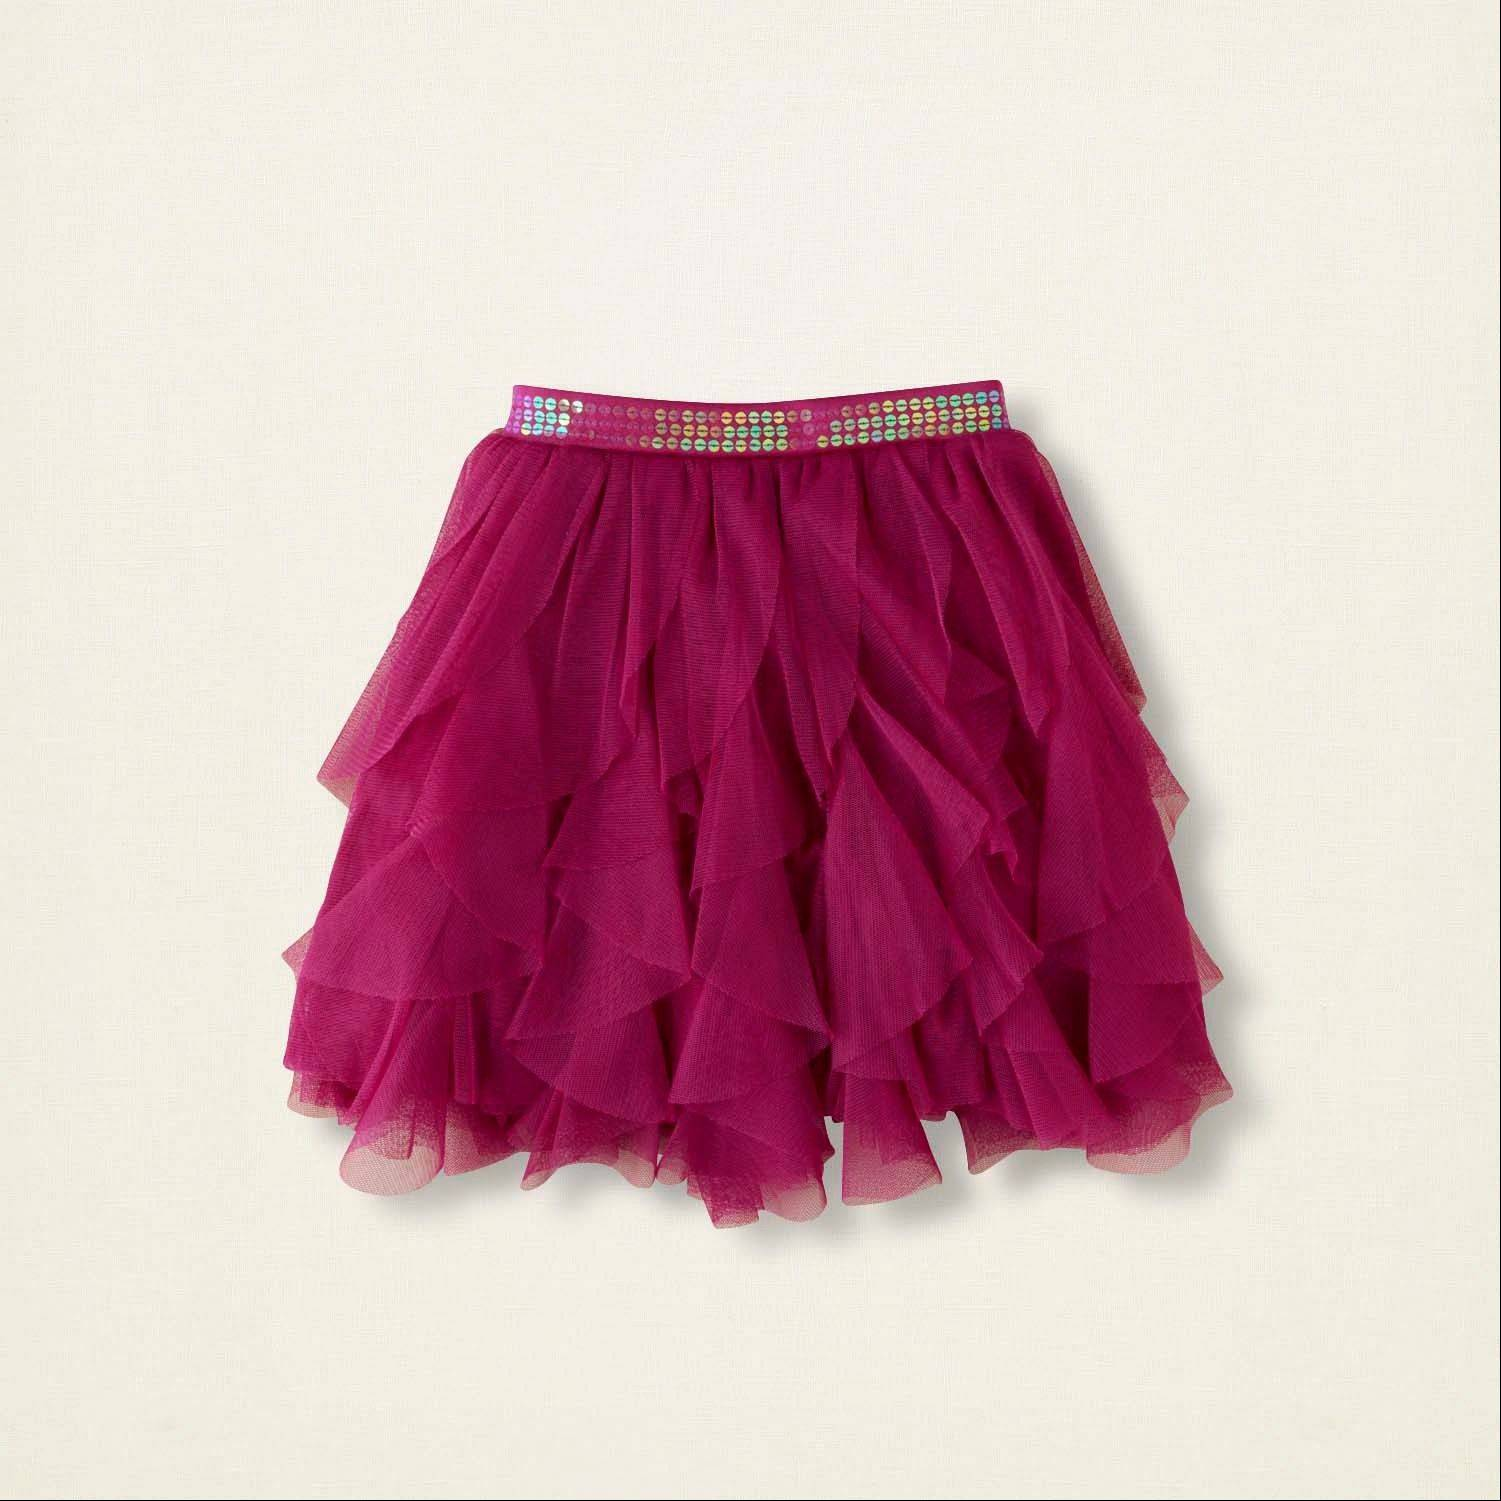 Aa tiered sequin skirt from The Children's Place.